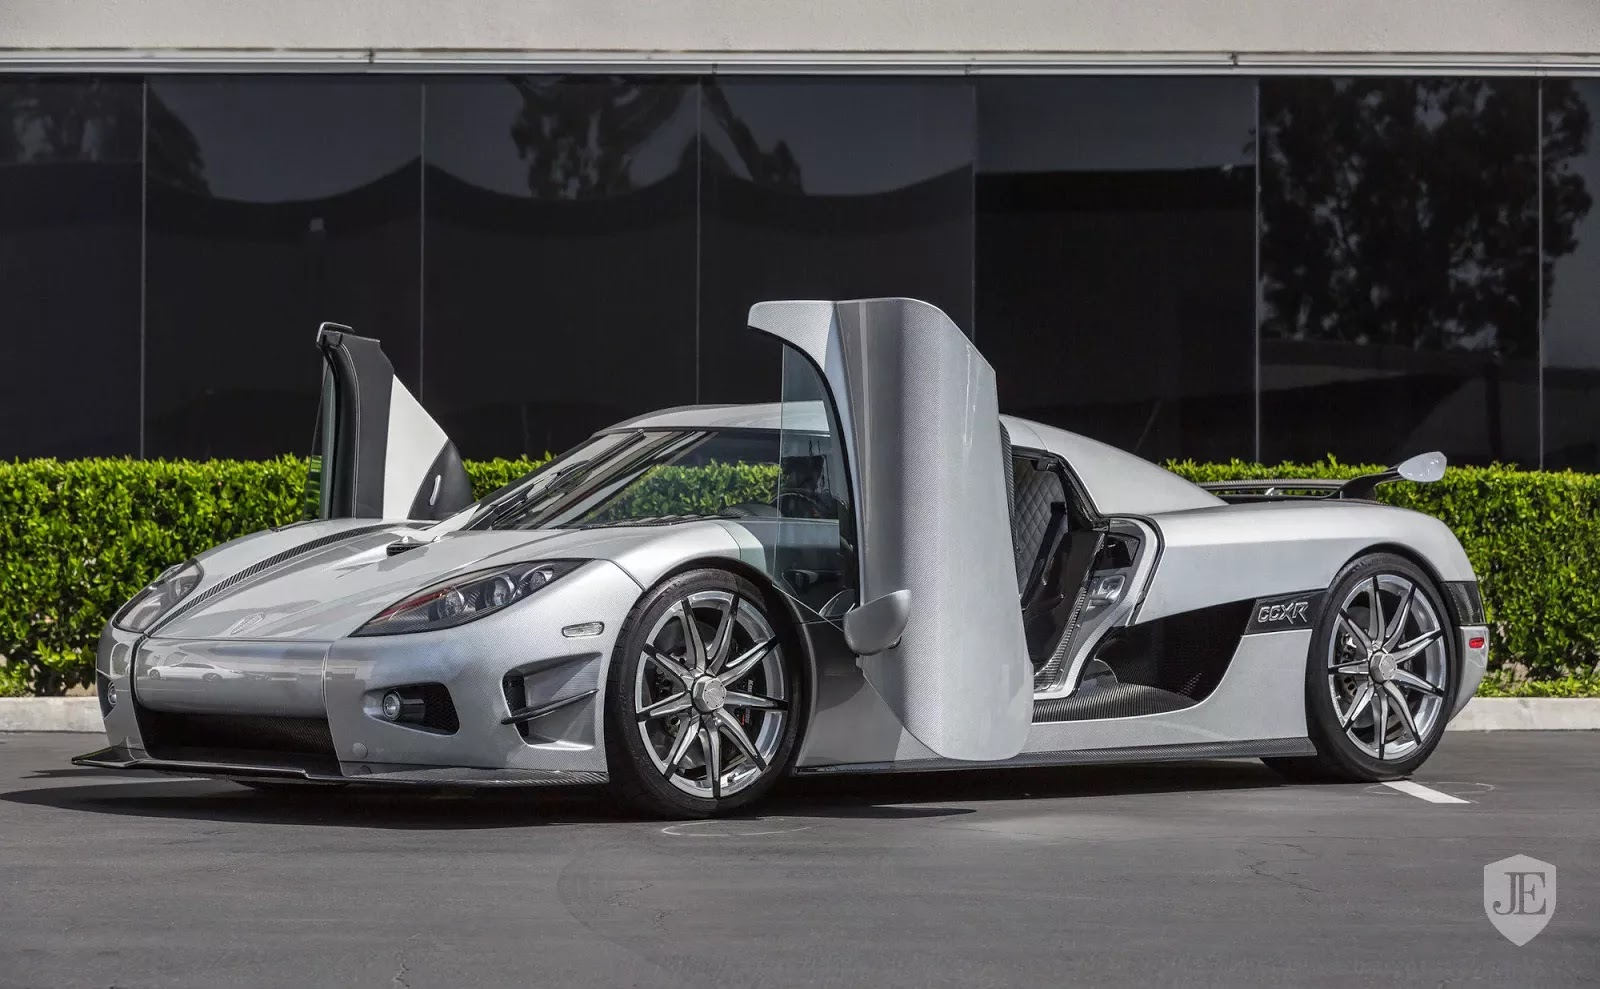 Bmw M1 For Sale >> Koenigsegg CCXR Trevita Owned By Mayweather Up For Sale Again